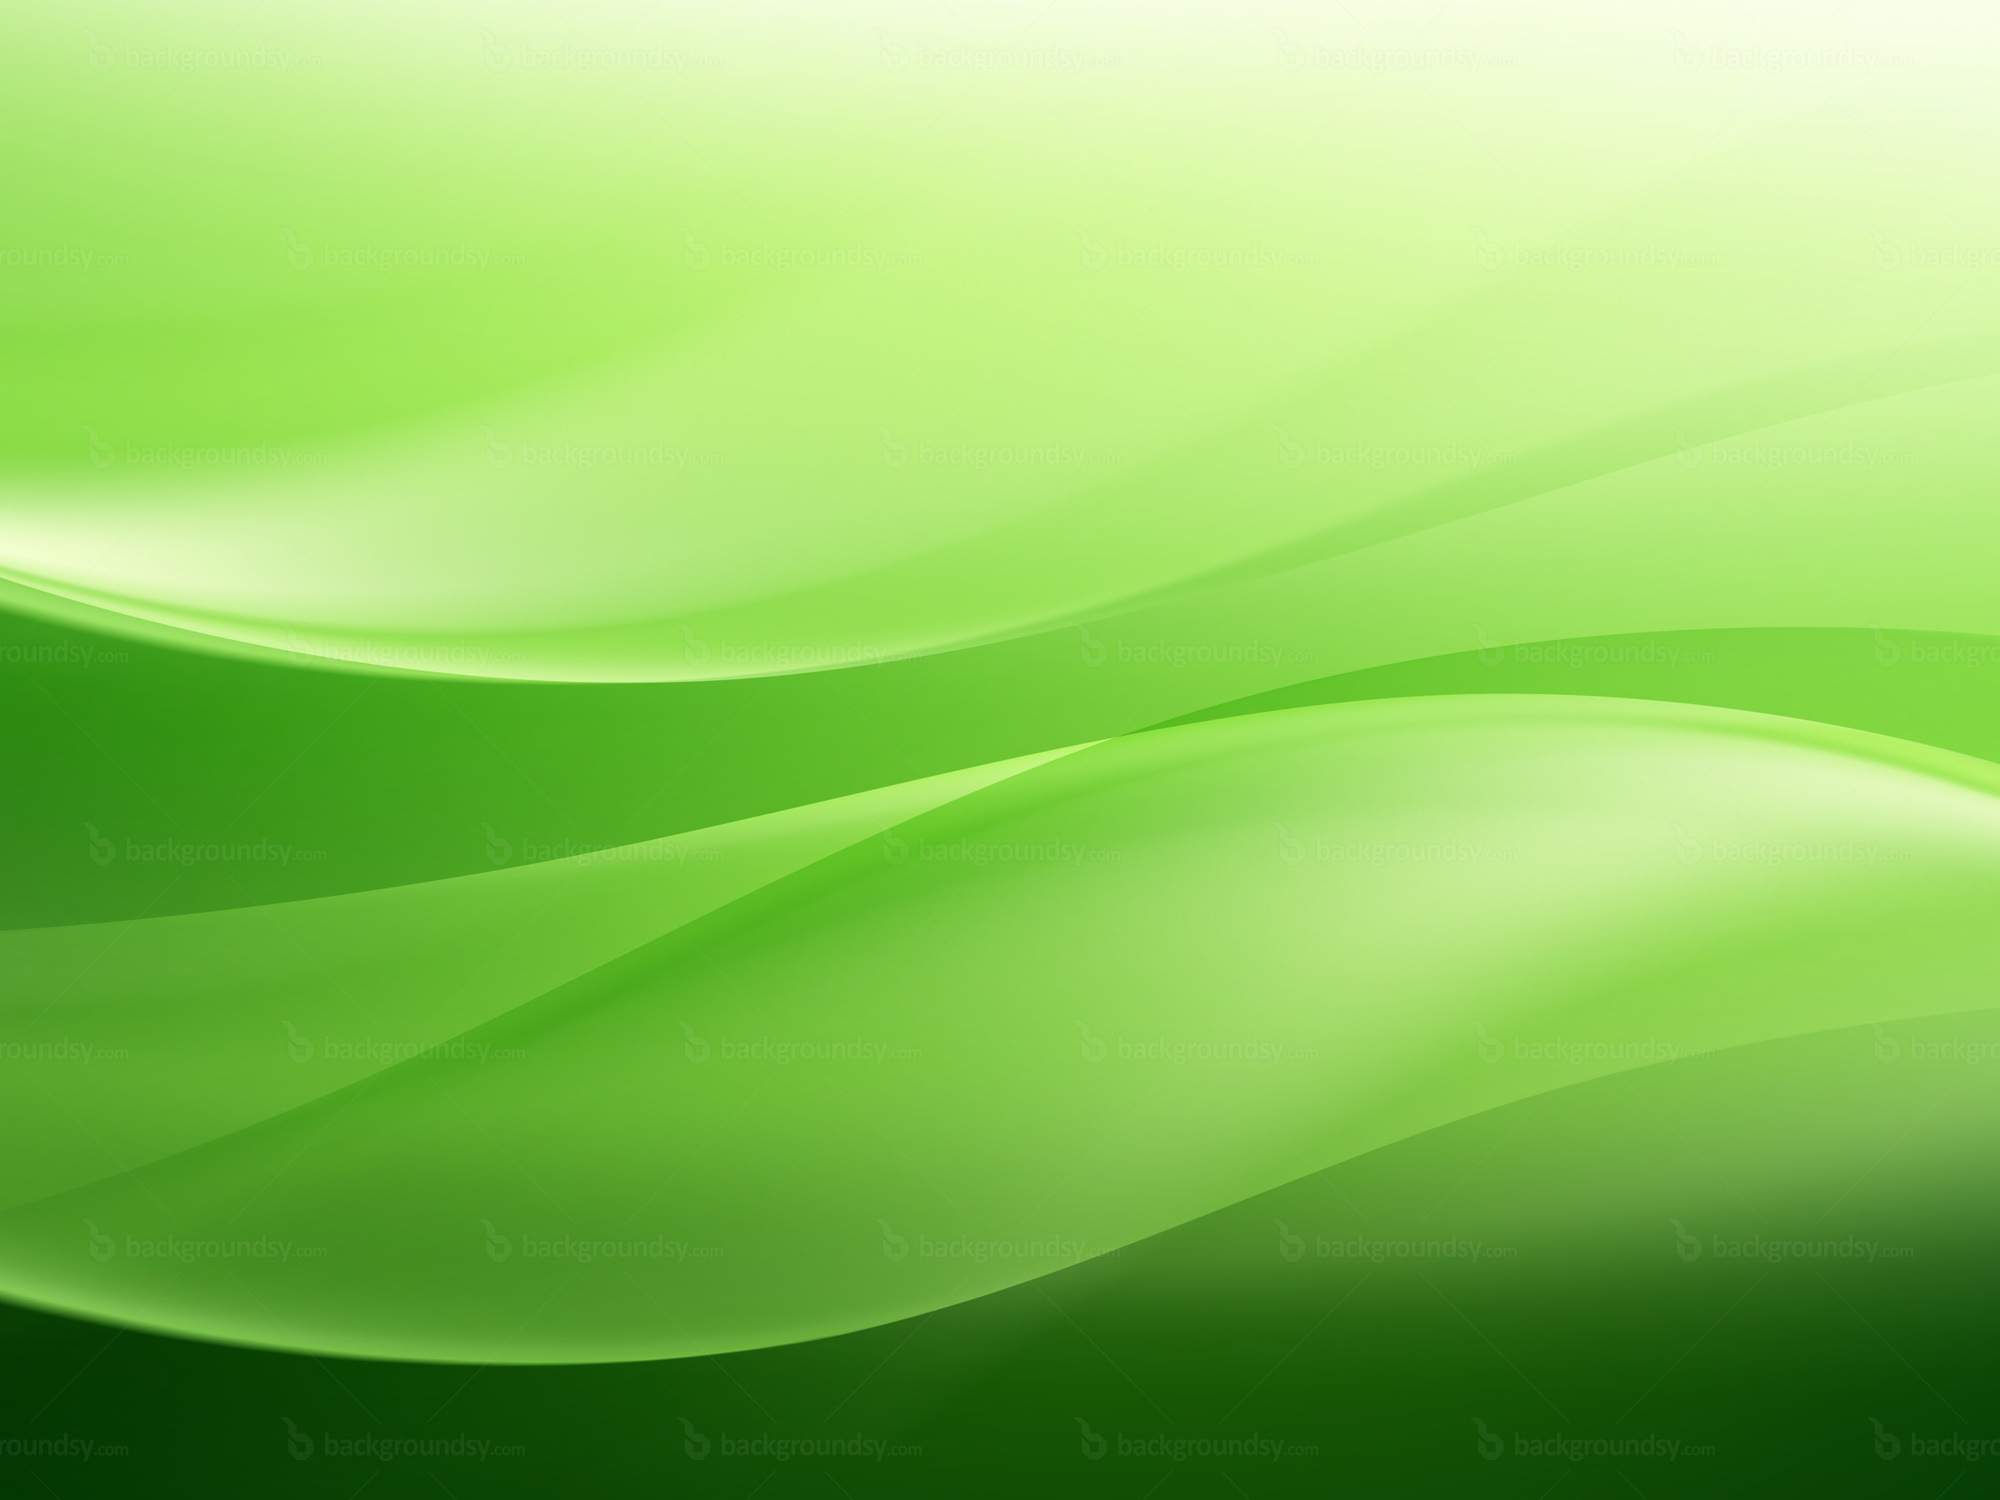 wavy green background vector - photo #37